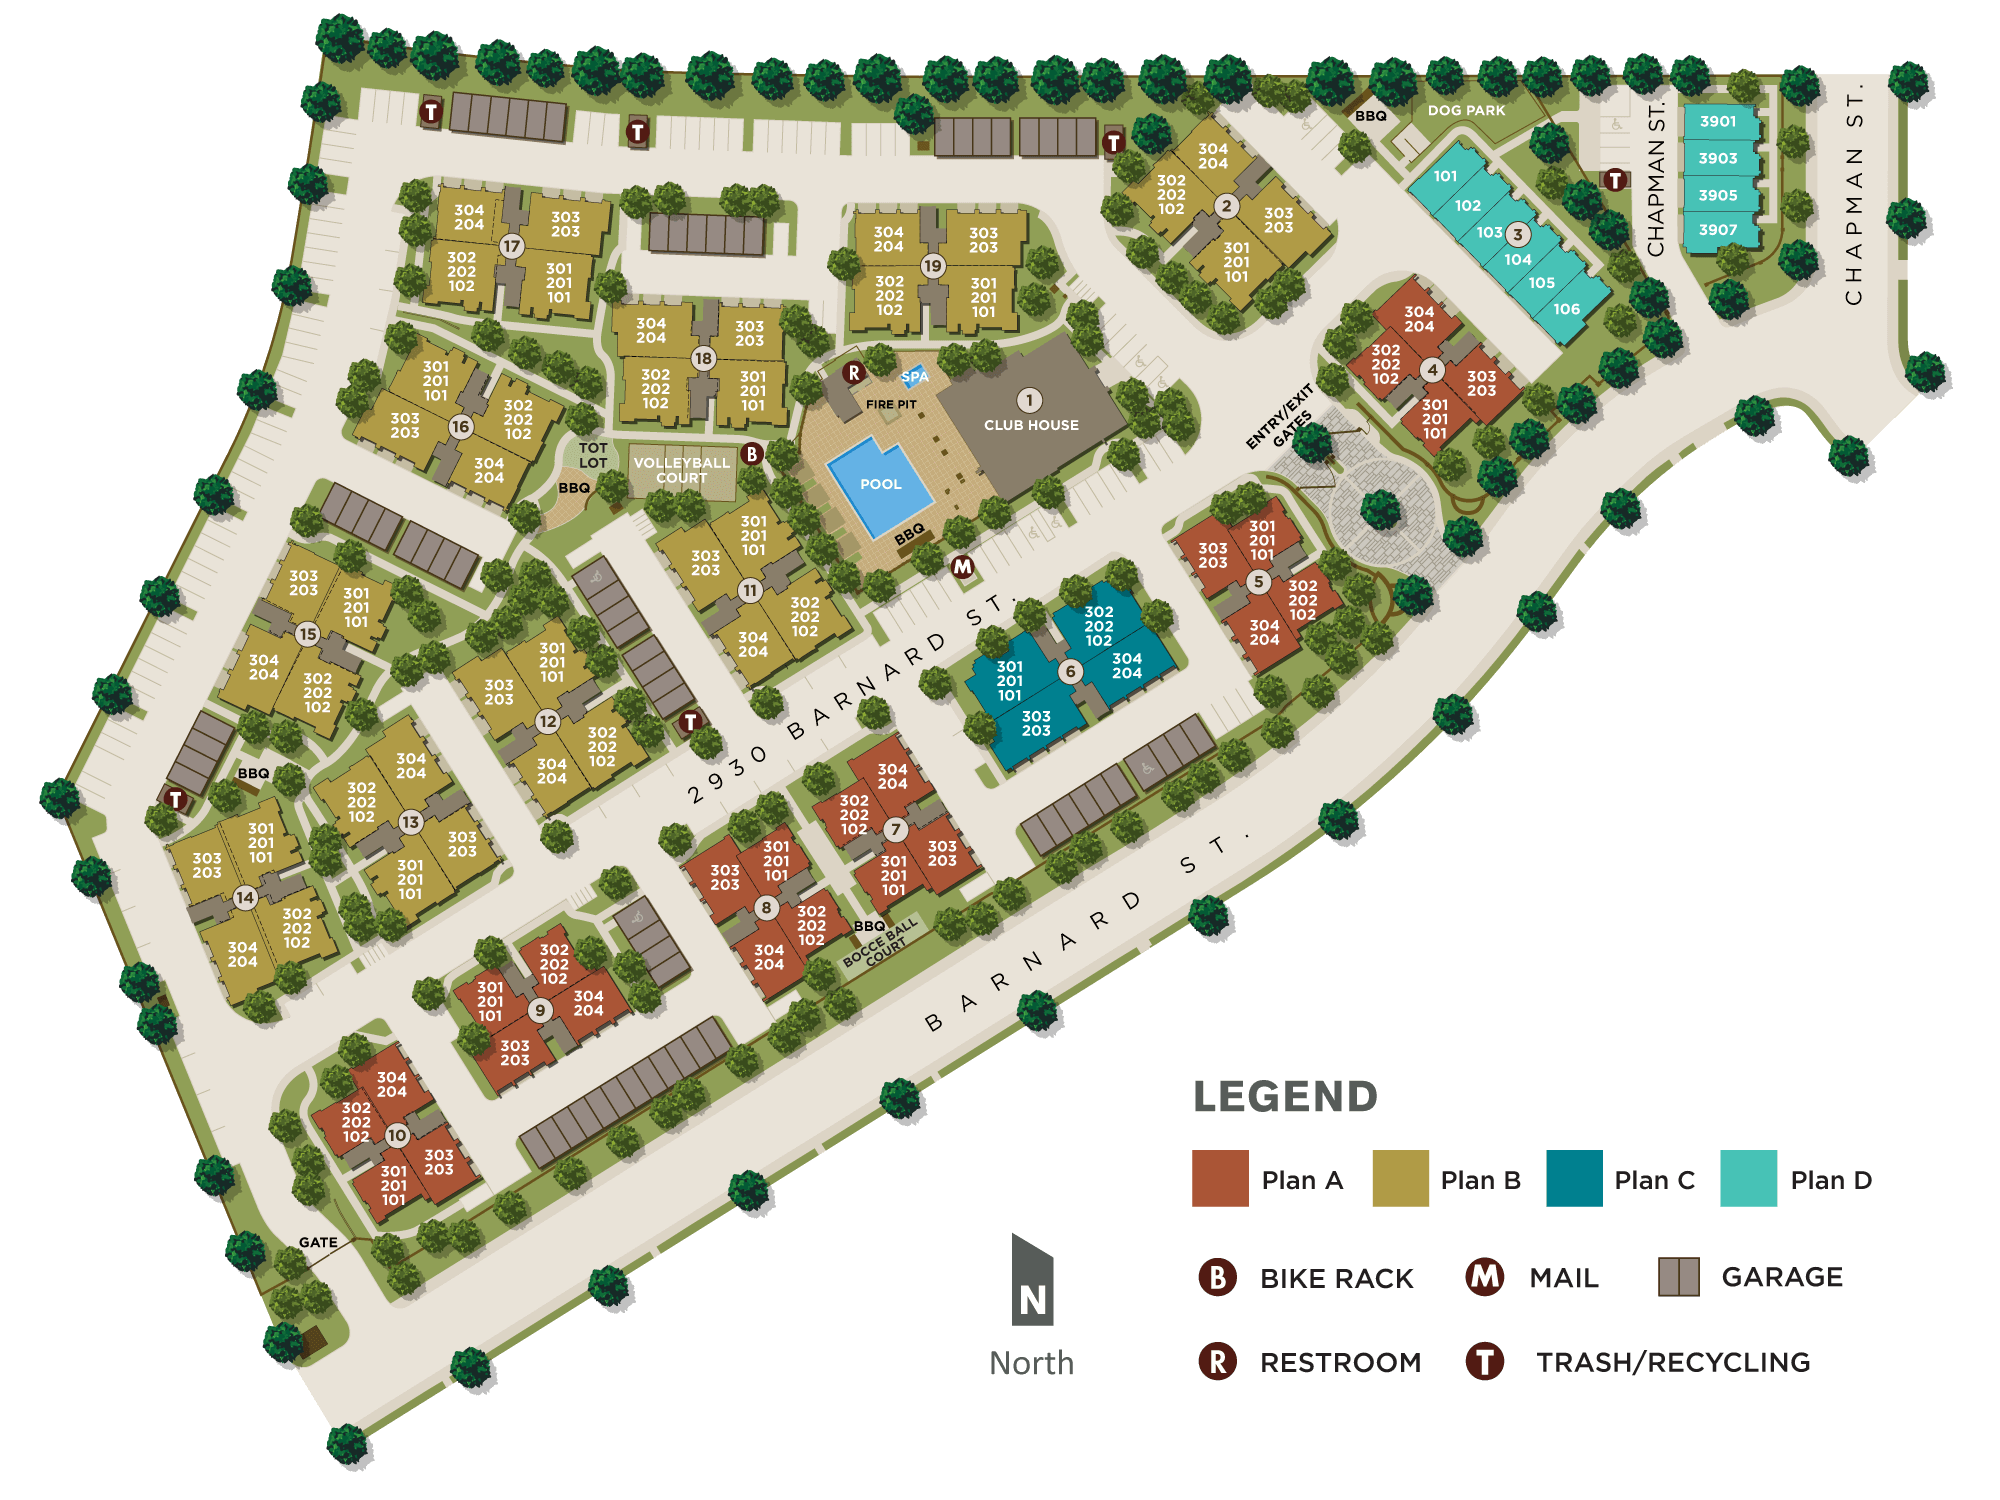 Site Plan for IOS